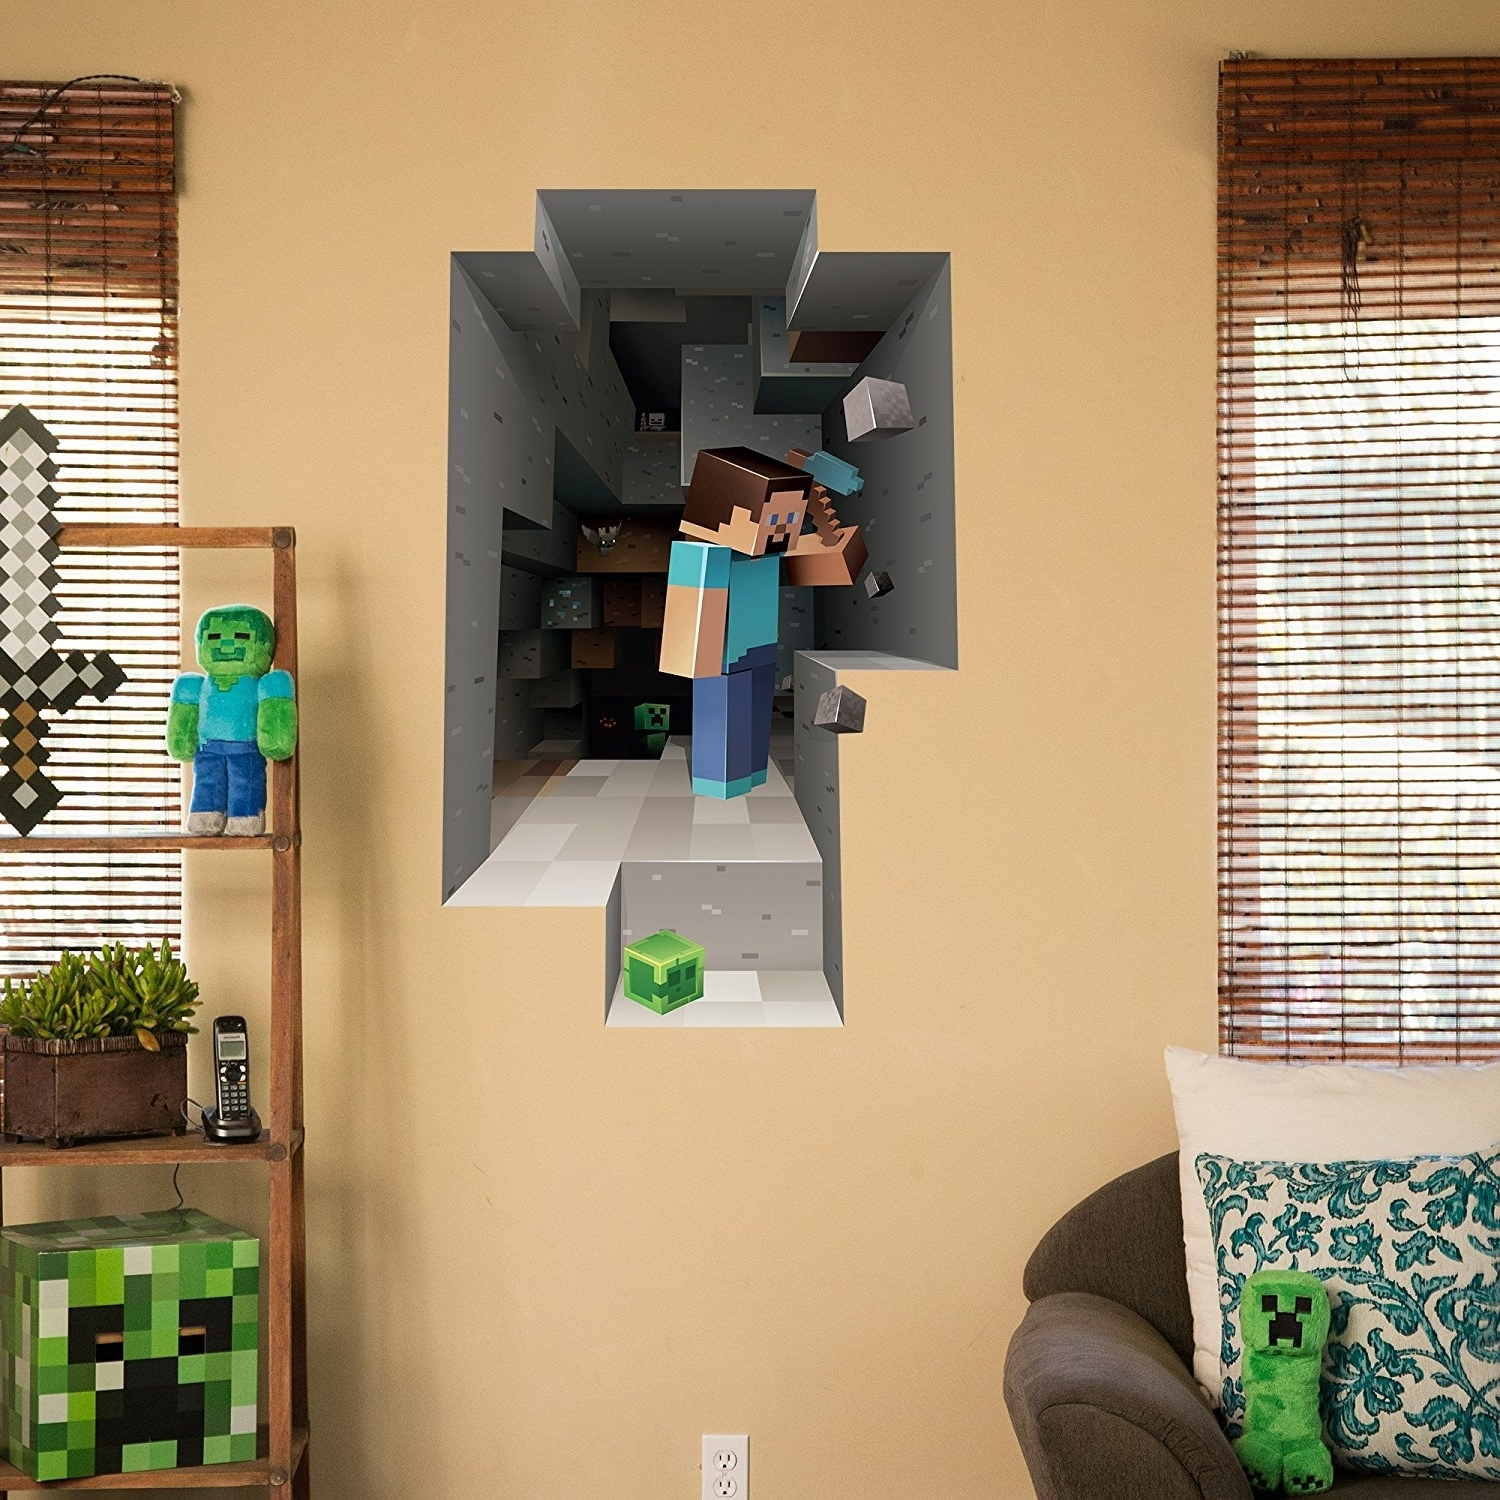 Minecraft 3D Wall Art Regarding Famous Amazon: Minecraft Digging Steve Wall Cling Decal: Home & Kitchen (View 5 of 15)